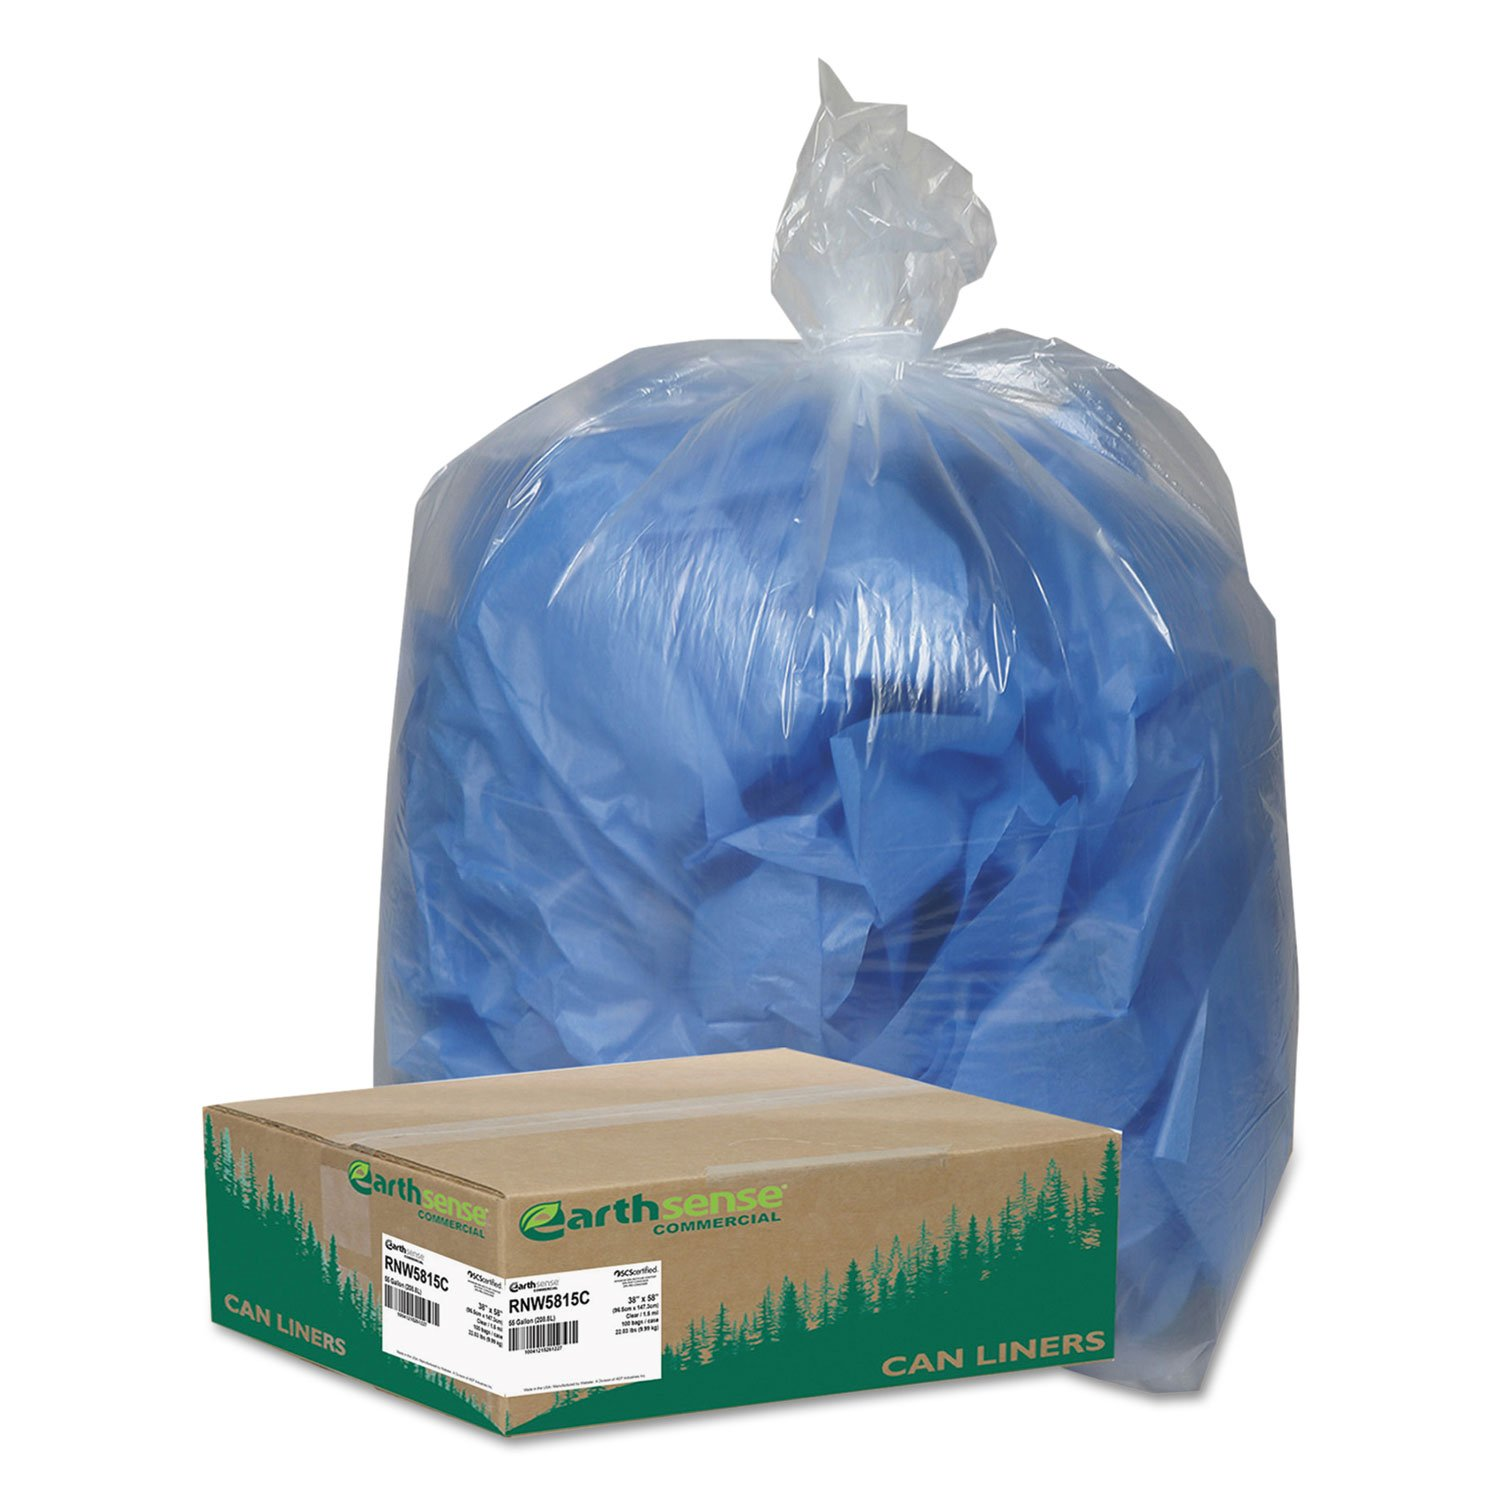 Earthsense Clear Recycled Can Liners, 55-60 gallons, 1.5mil, Clear  (Case of 100) by Webster (Image #2)